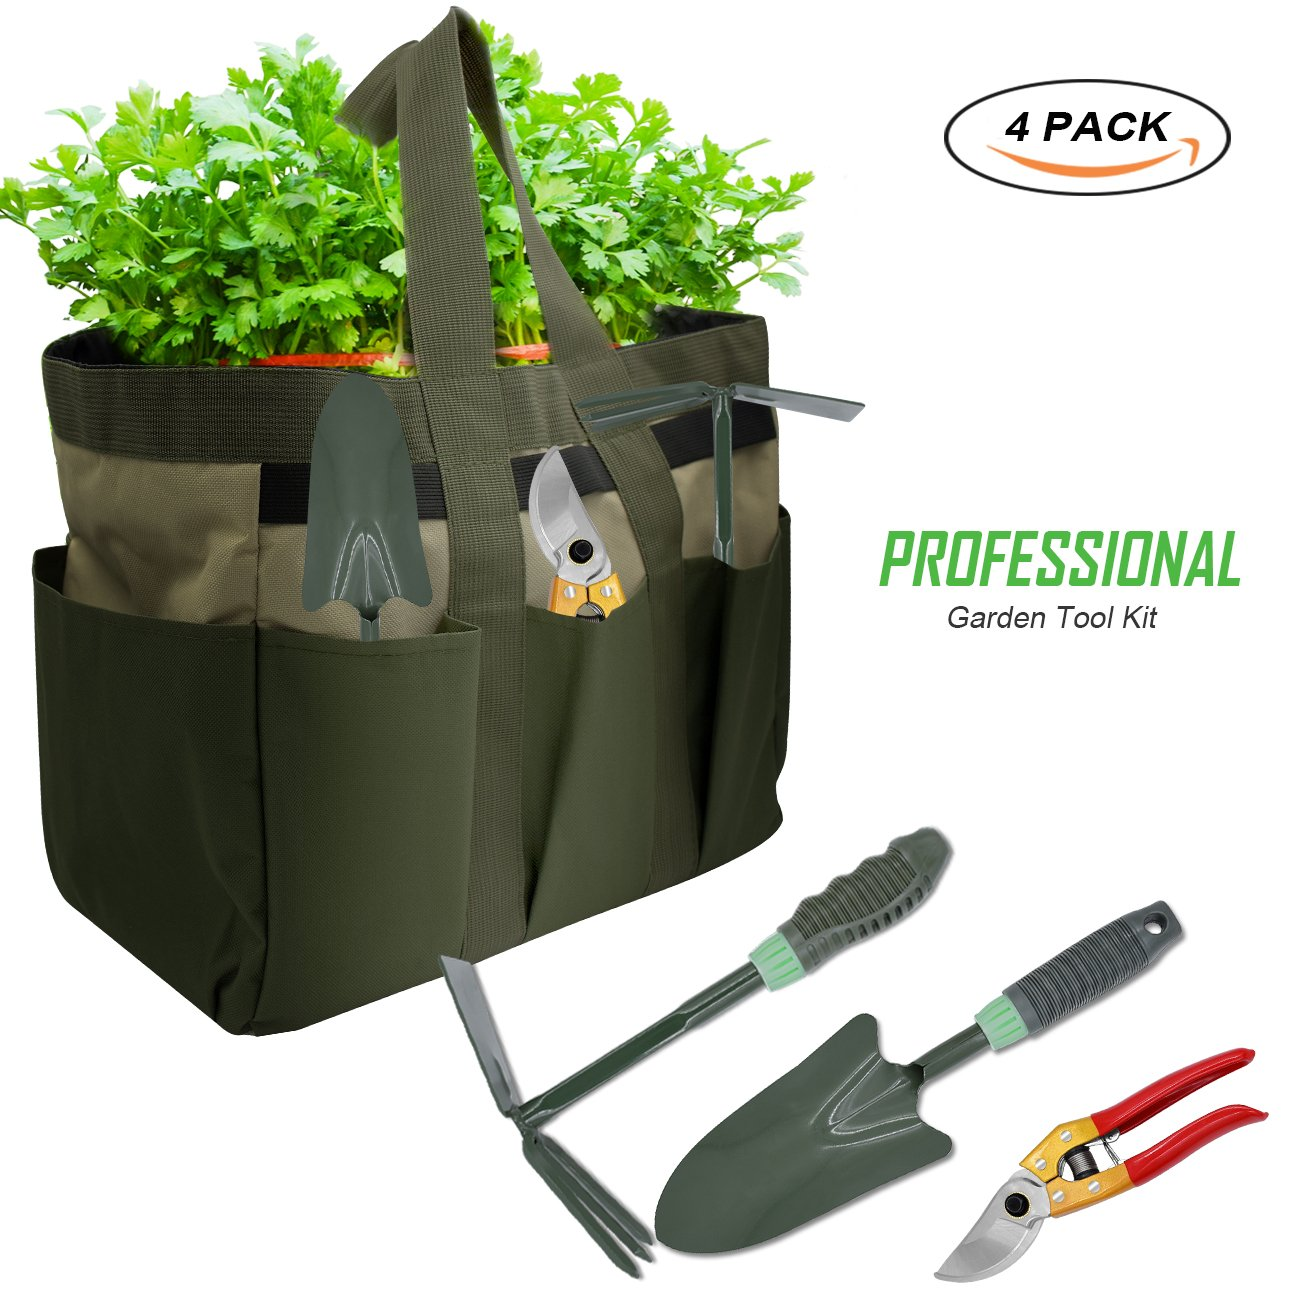 KOONEW Garden Tools Set,Ergonomic Garden Tool Kit Includes Pruning Shear,Trowel,2 in 1 Culti-Hoe with Durable Non-Slip Handle Storage Garden Tote Bag by KOONEW